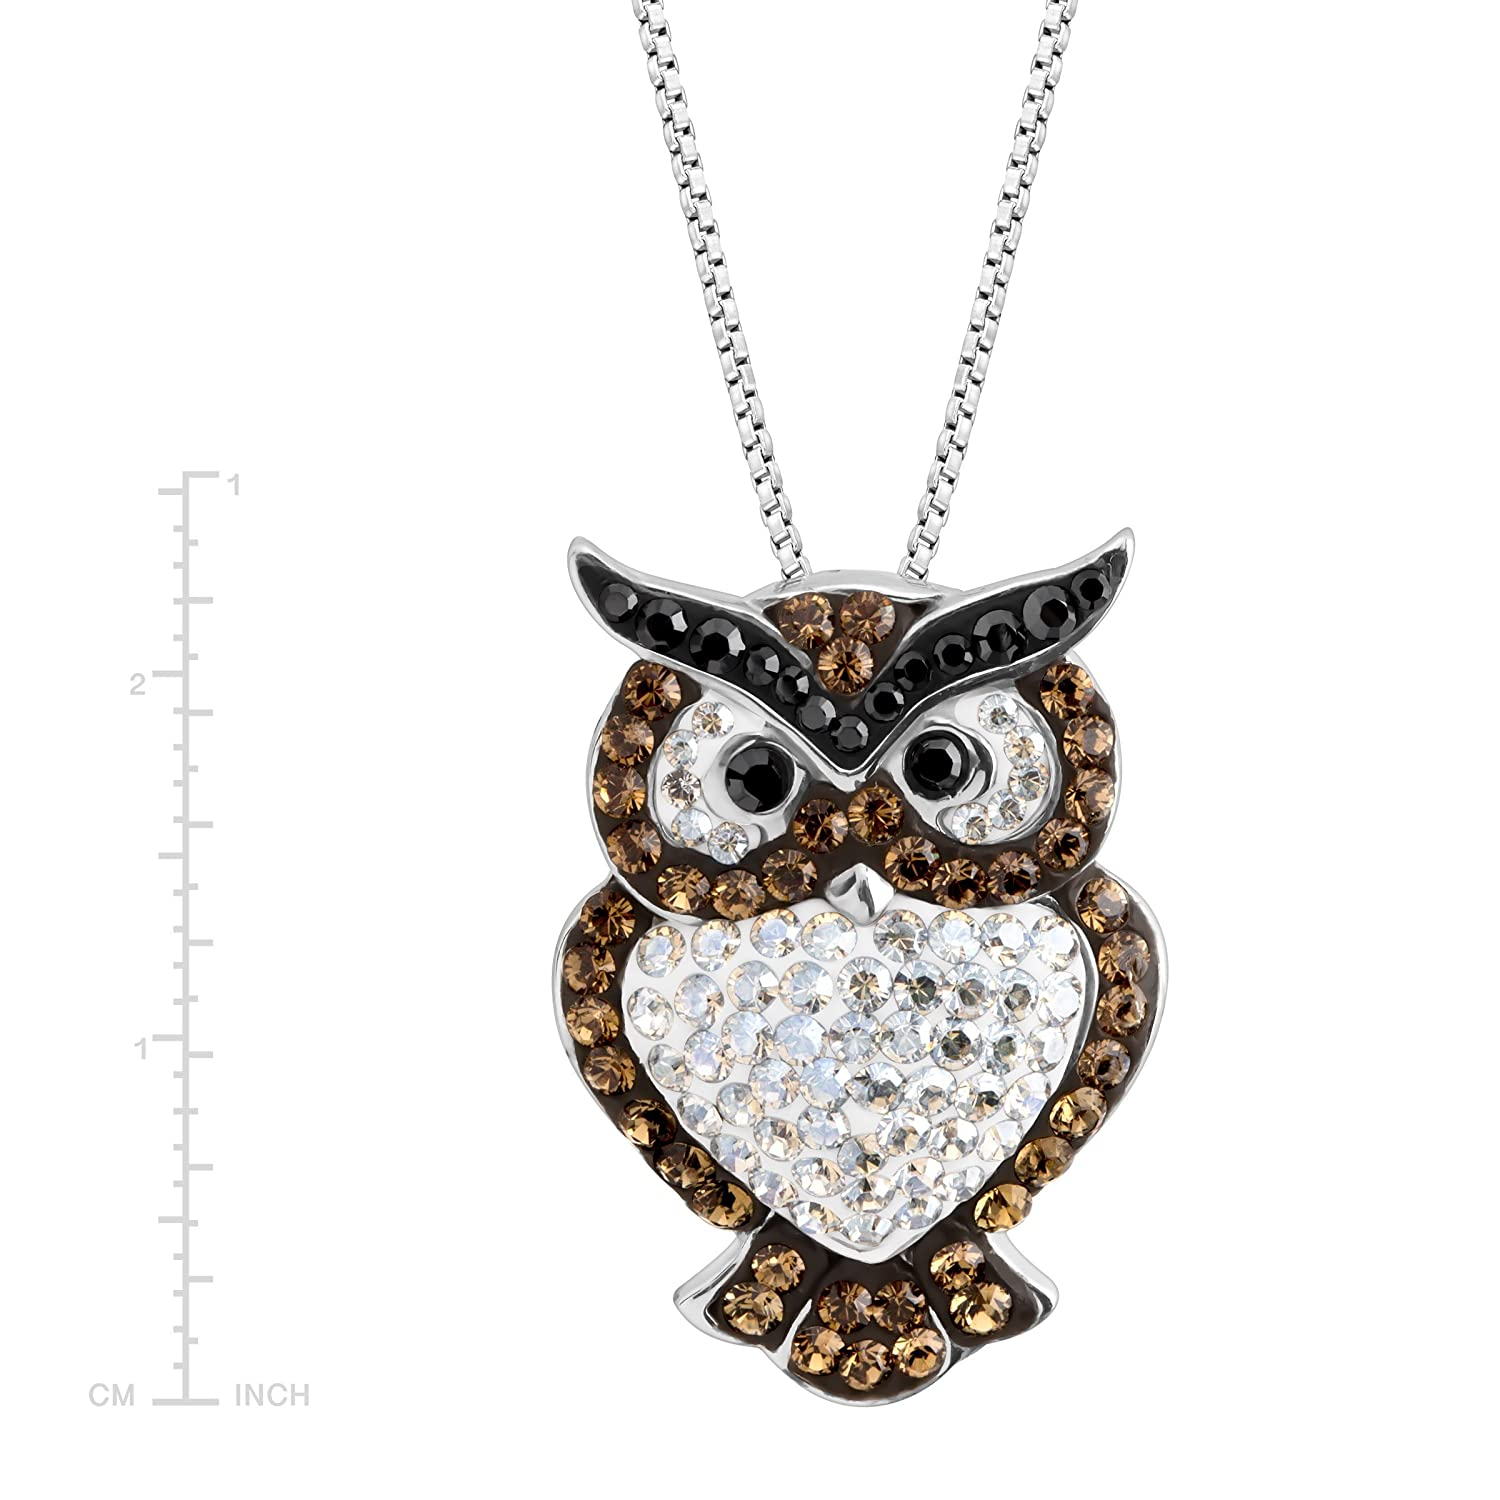 98fab9e4756f4 Amazon.com: Crystaluxe Owl Pendant Necklace with Swarovski Crystals ...